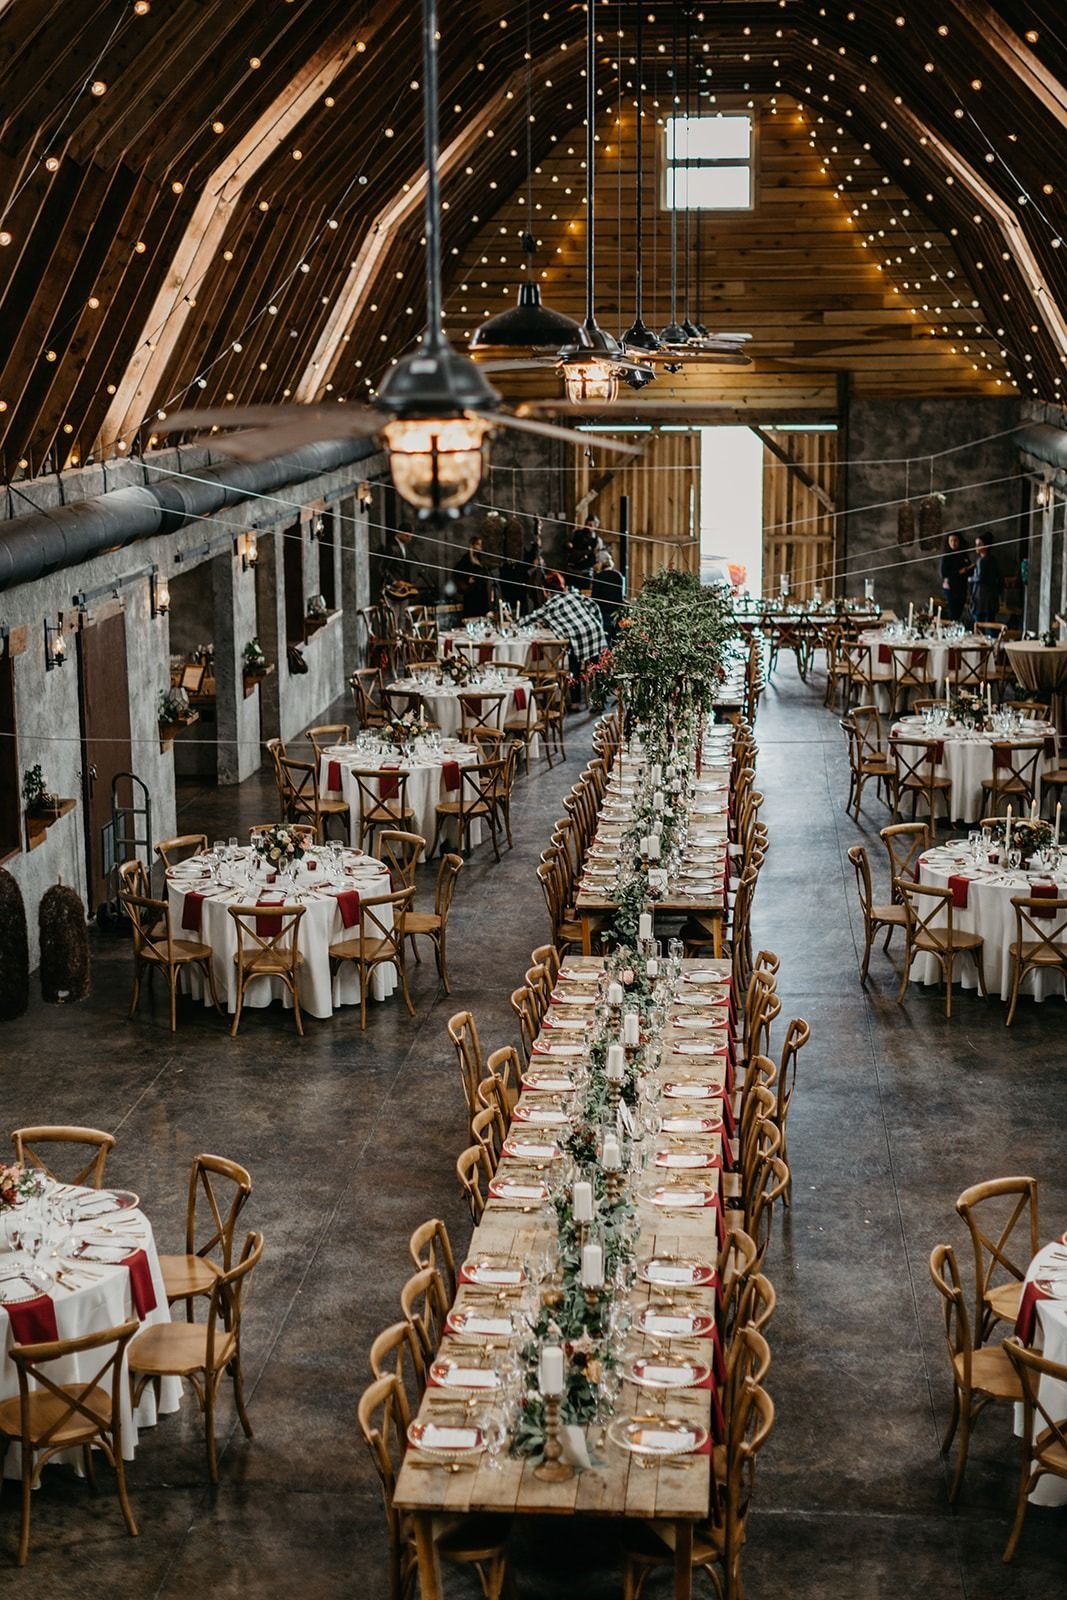 Overlook Barn reception layout with farm tables and